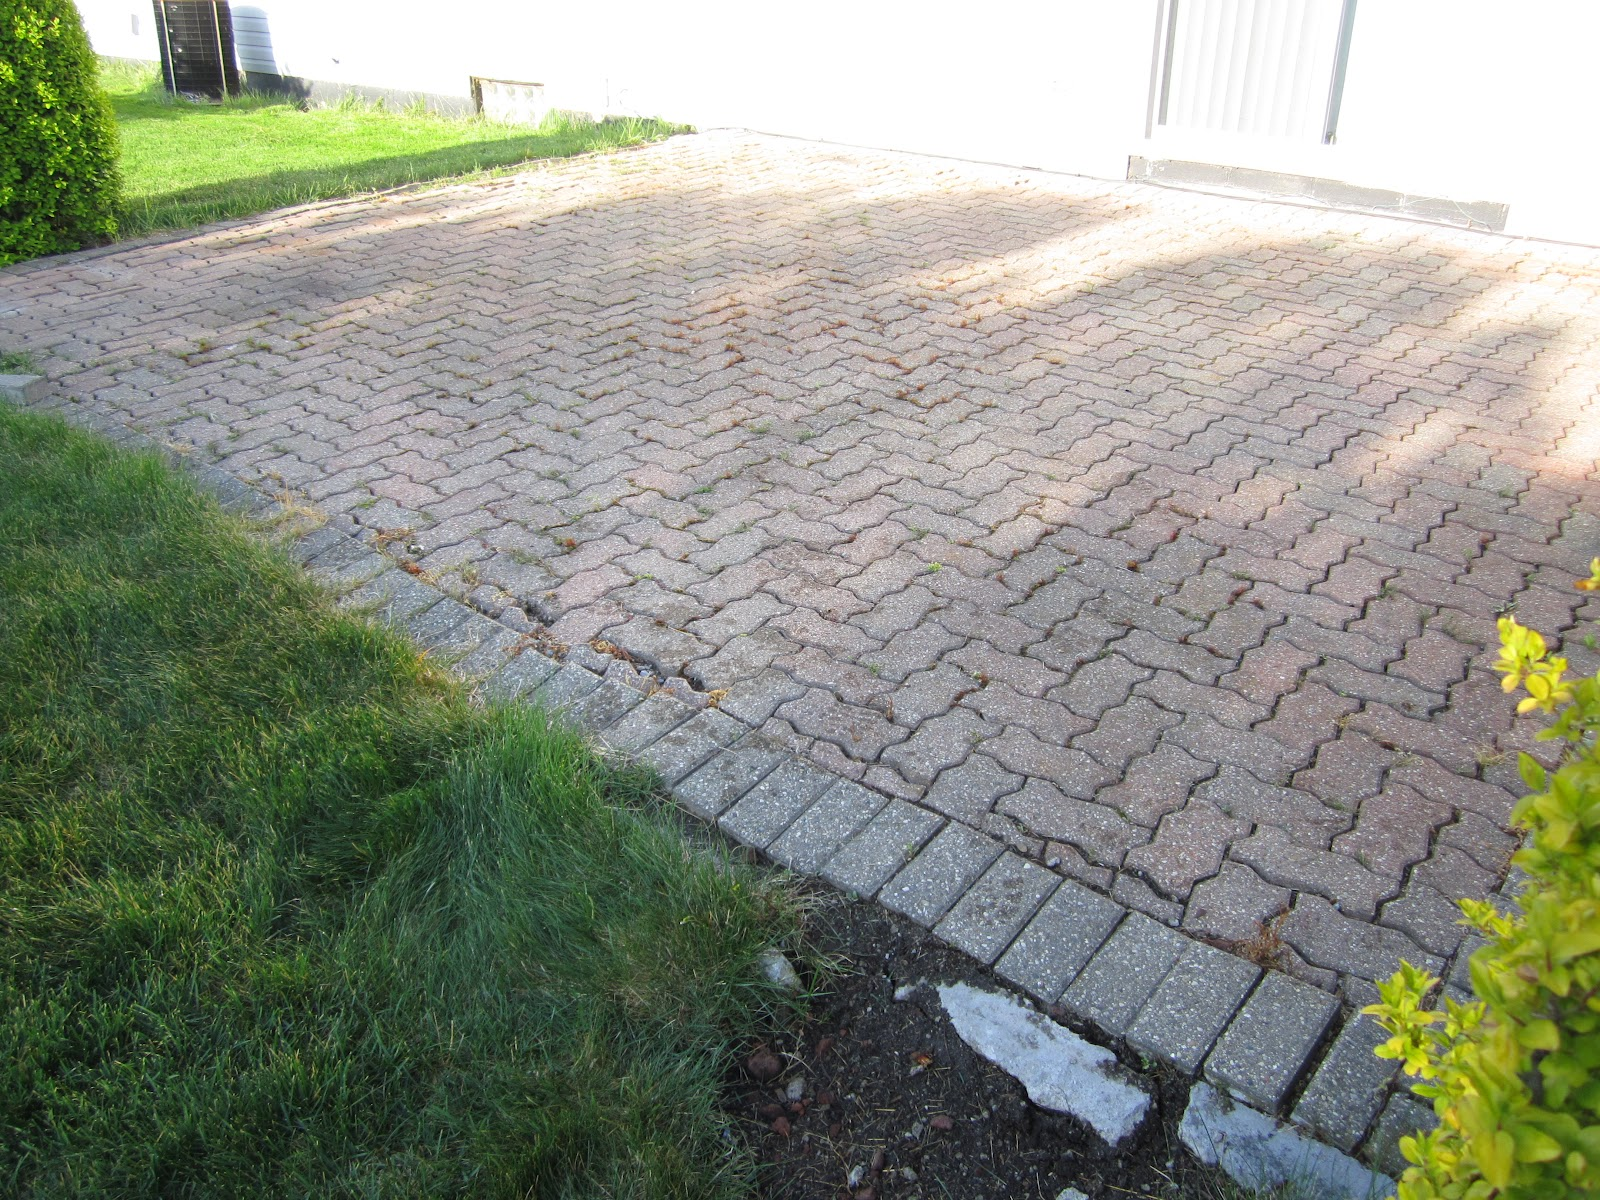 We Completely Lifted Up The Brick Pavers, Removed Any Organic Matter,  Re Compacted The Original Base Material, Added Additional Base As Needed,  ...